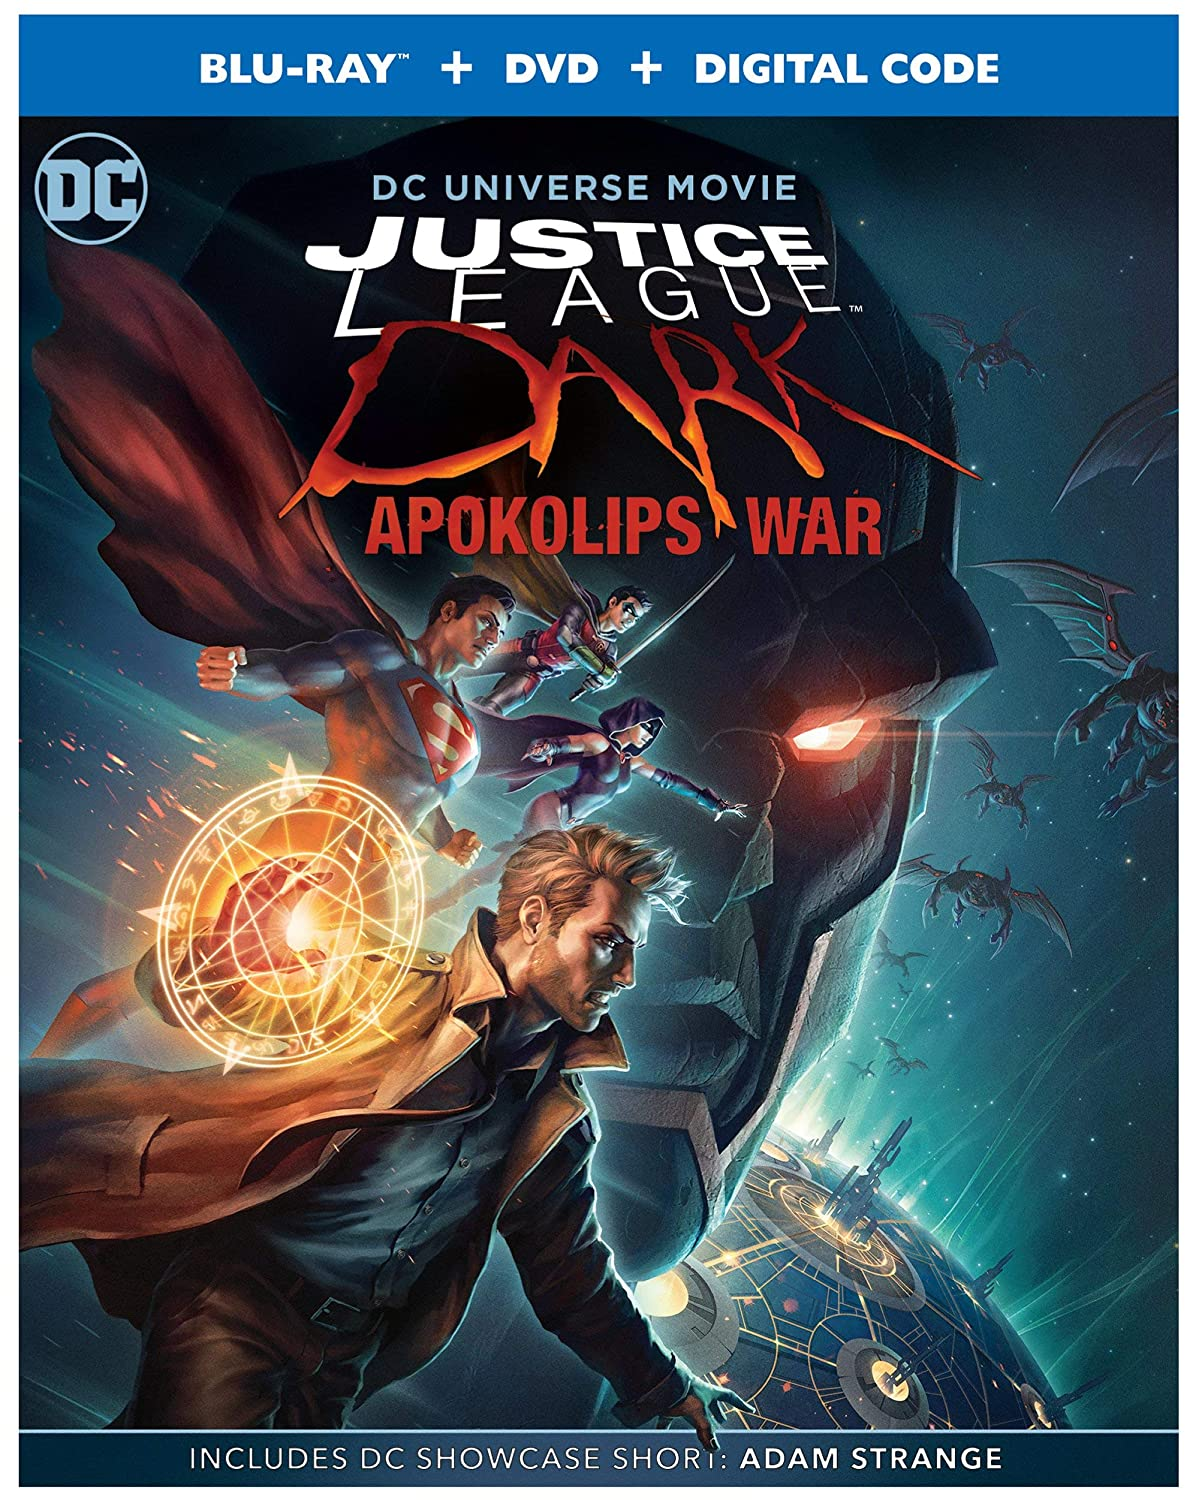 Justice League Dark Apokolips War